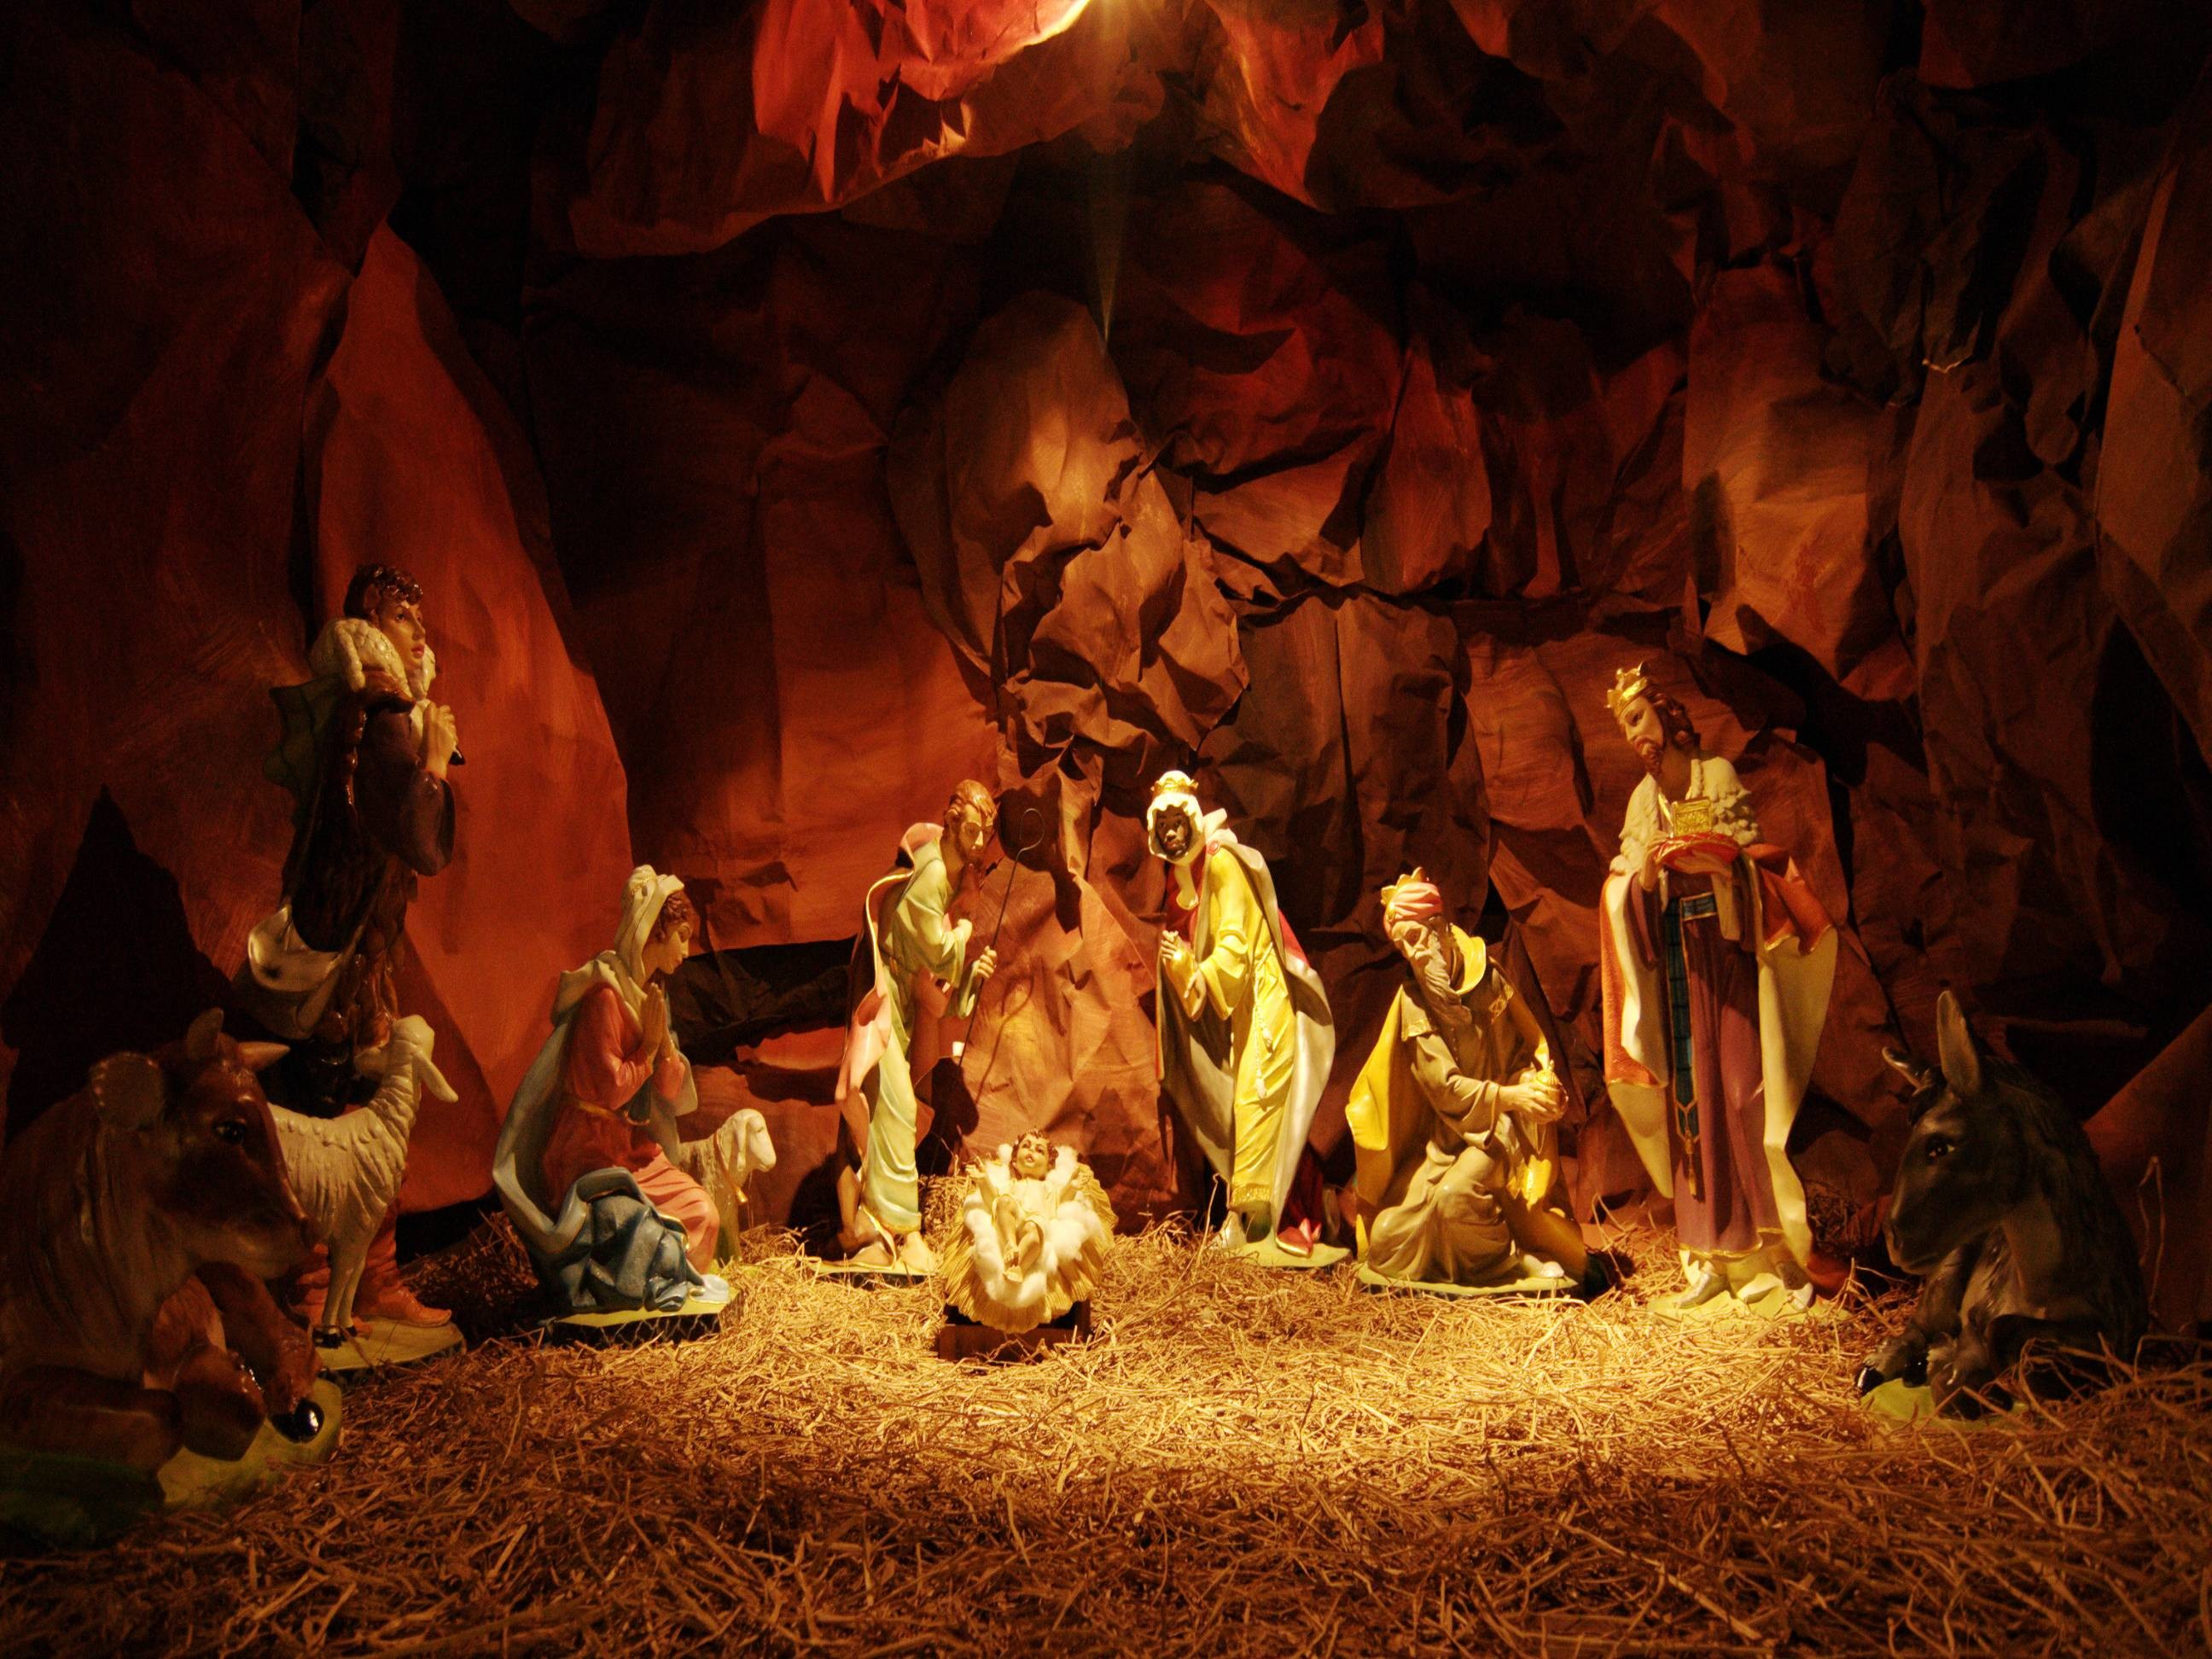 2592x1944 Download Nativity Scene Wallpaper